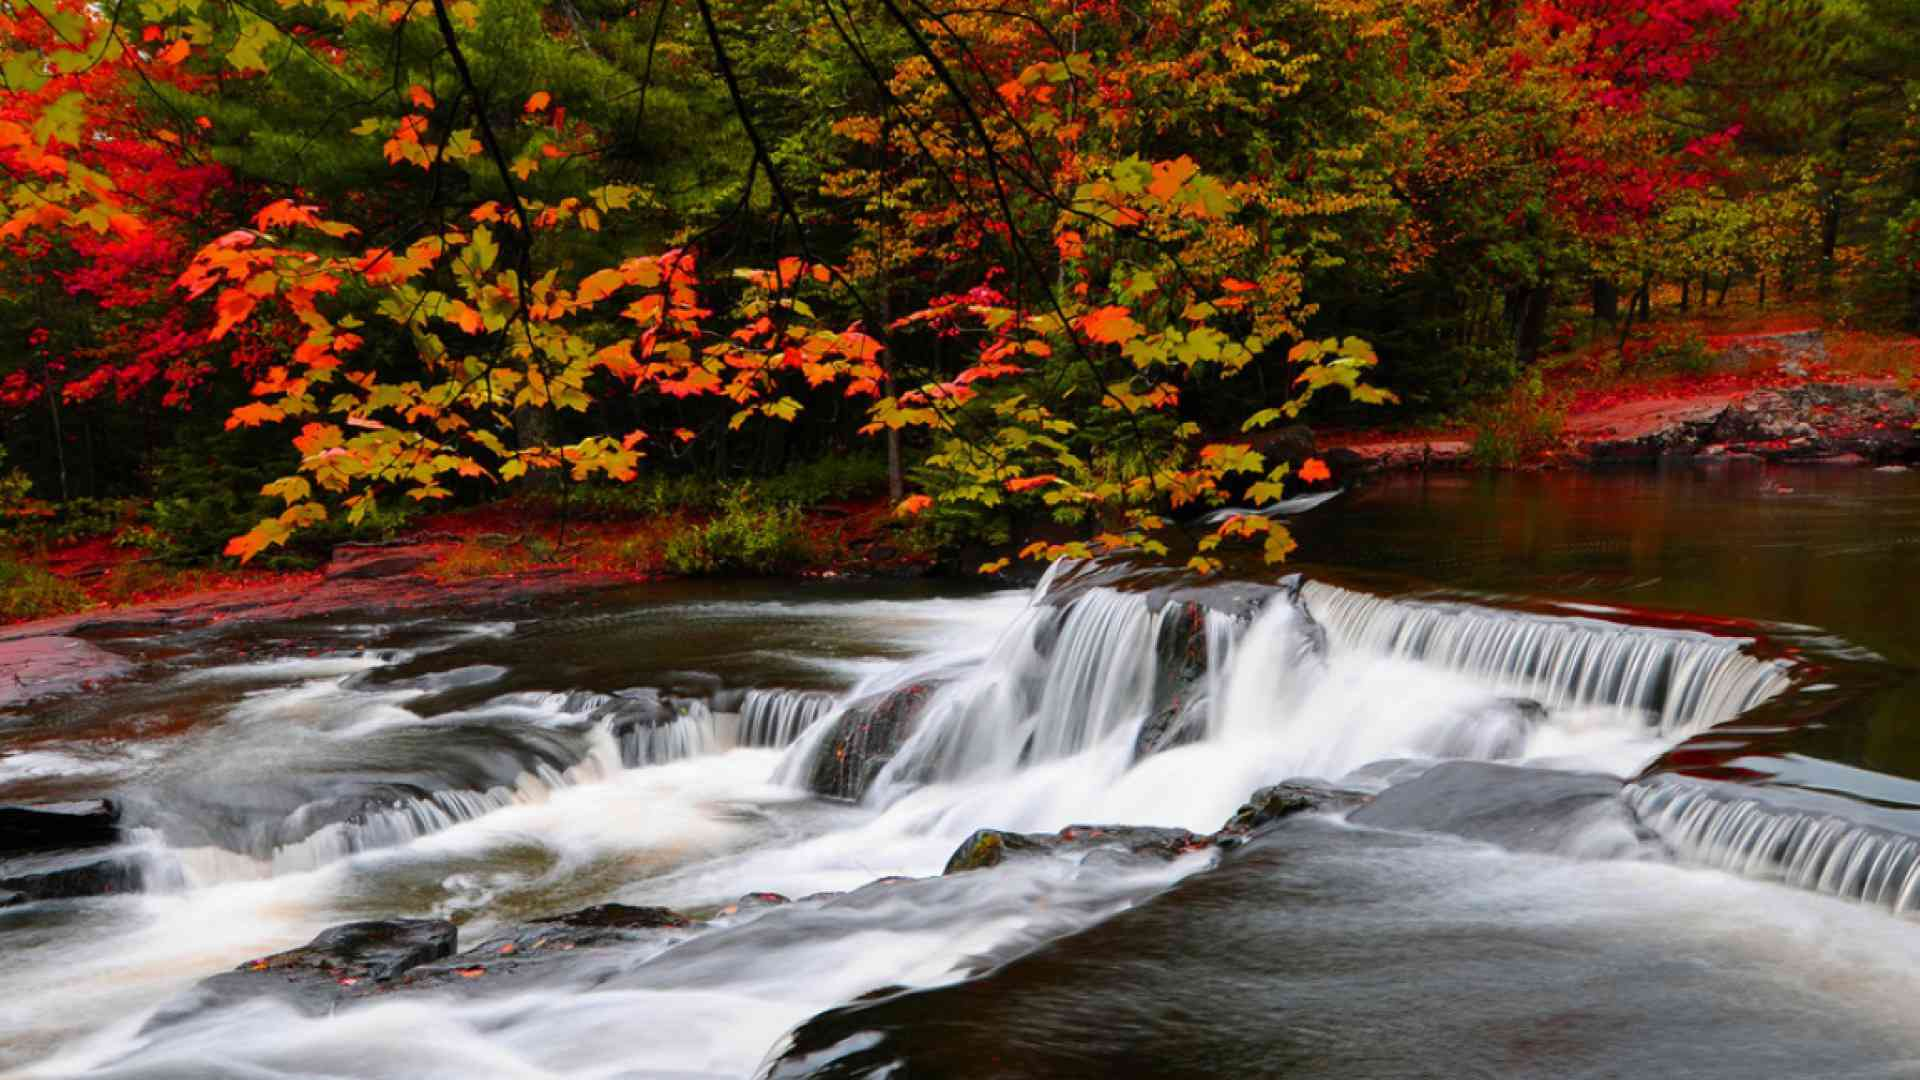 Free autumn wallpaper featuring a river surrounded by colorful trees and bushes.